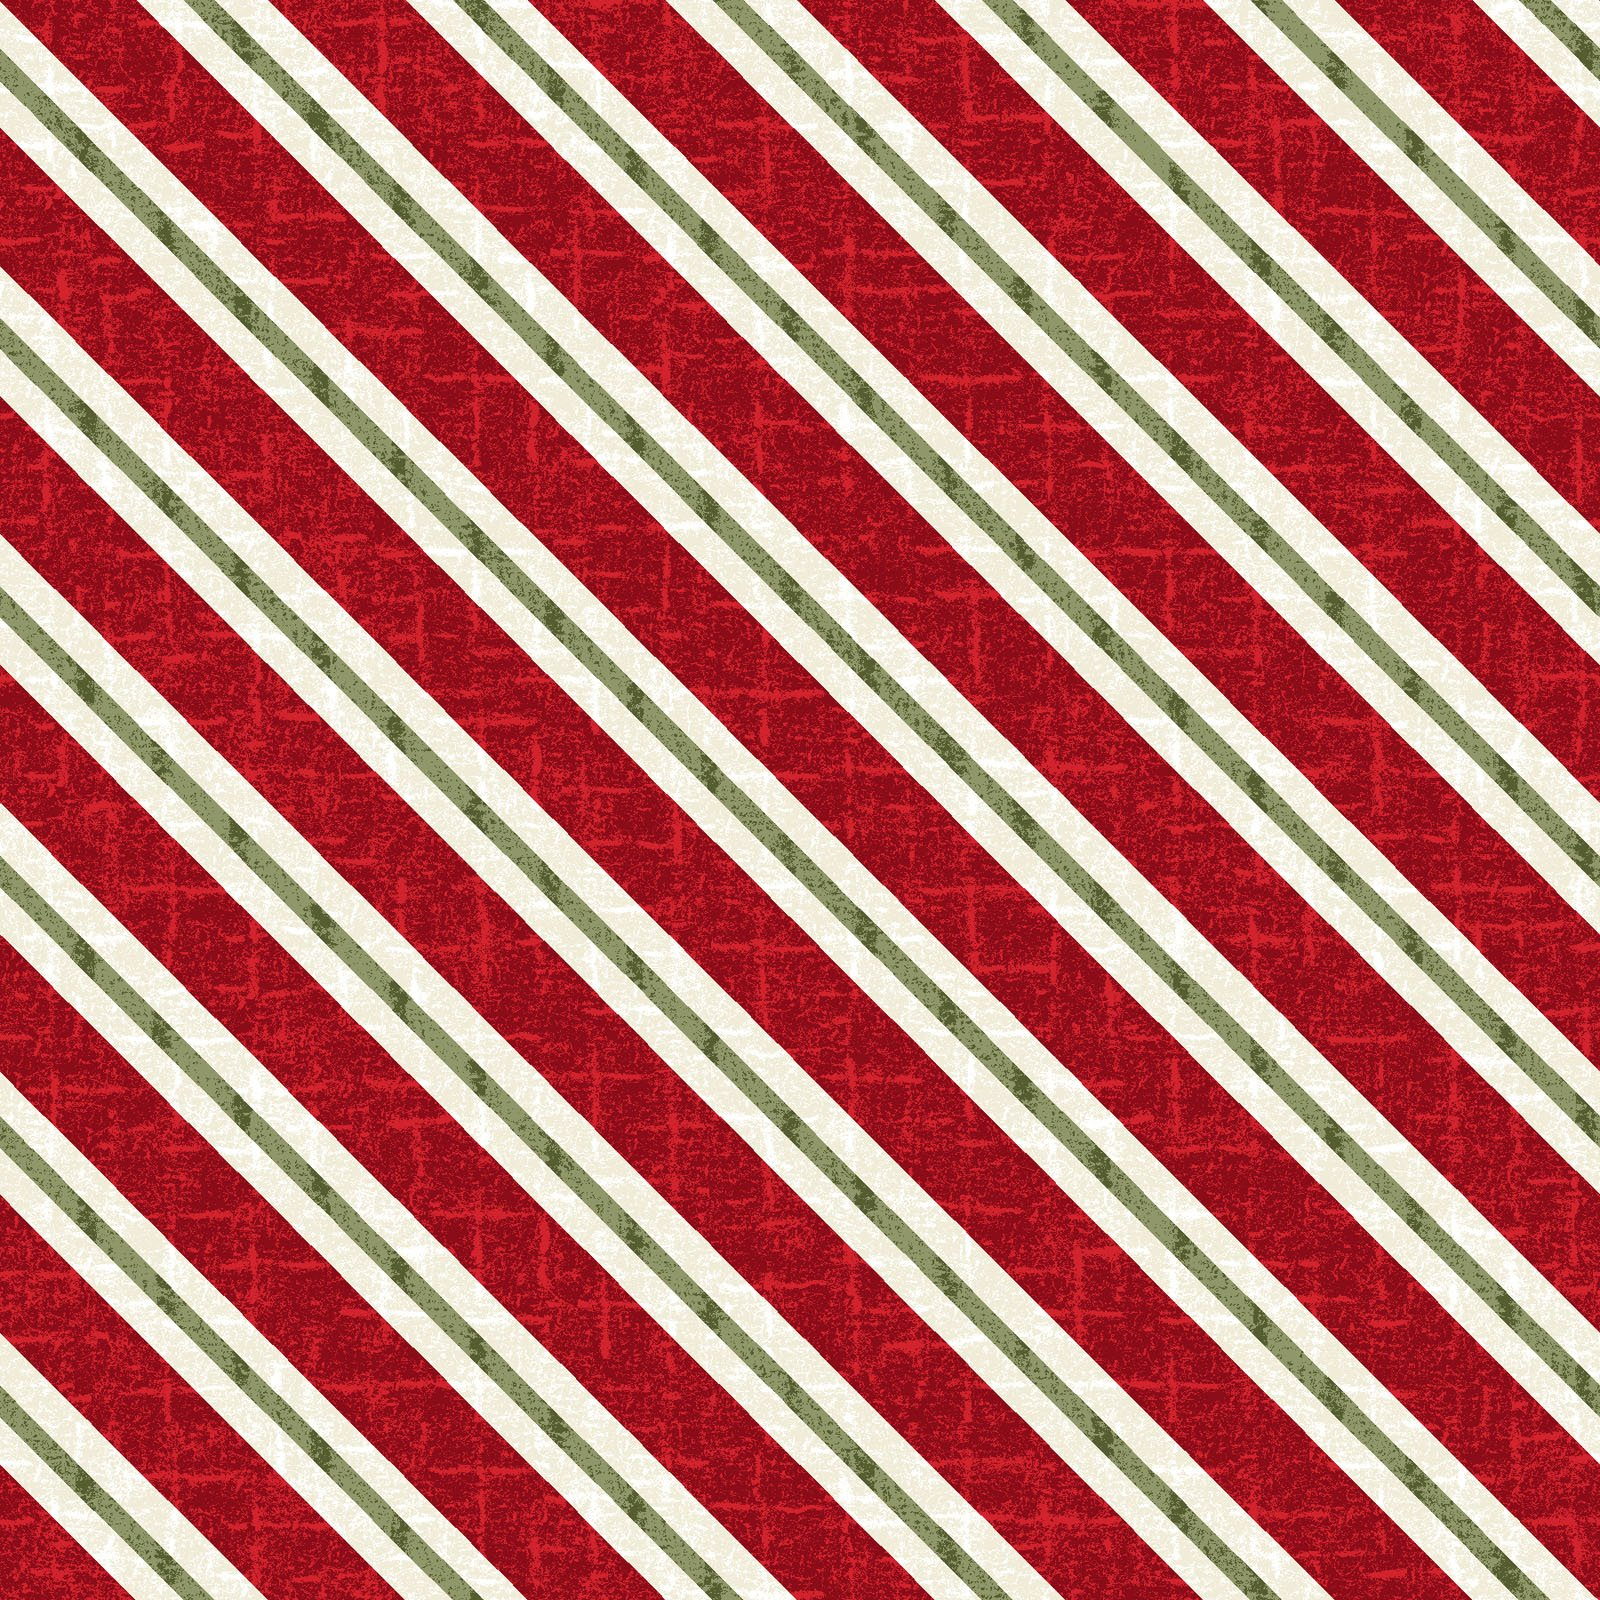 EESC-F9937 R - SNOWDAYS FLANNEL BY BONNIE SULLIVAN CANDY CANE STRIPE RED - ARRIVING IN JULY 2021